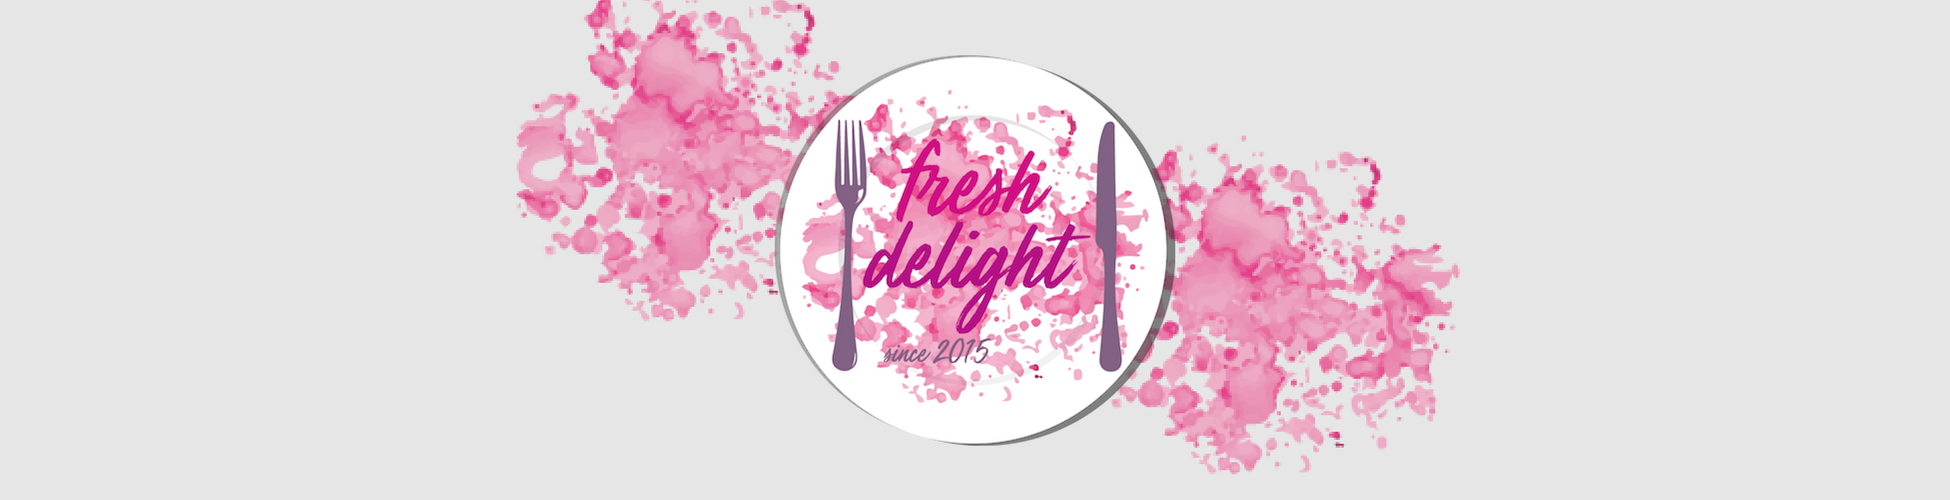 freshdelight